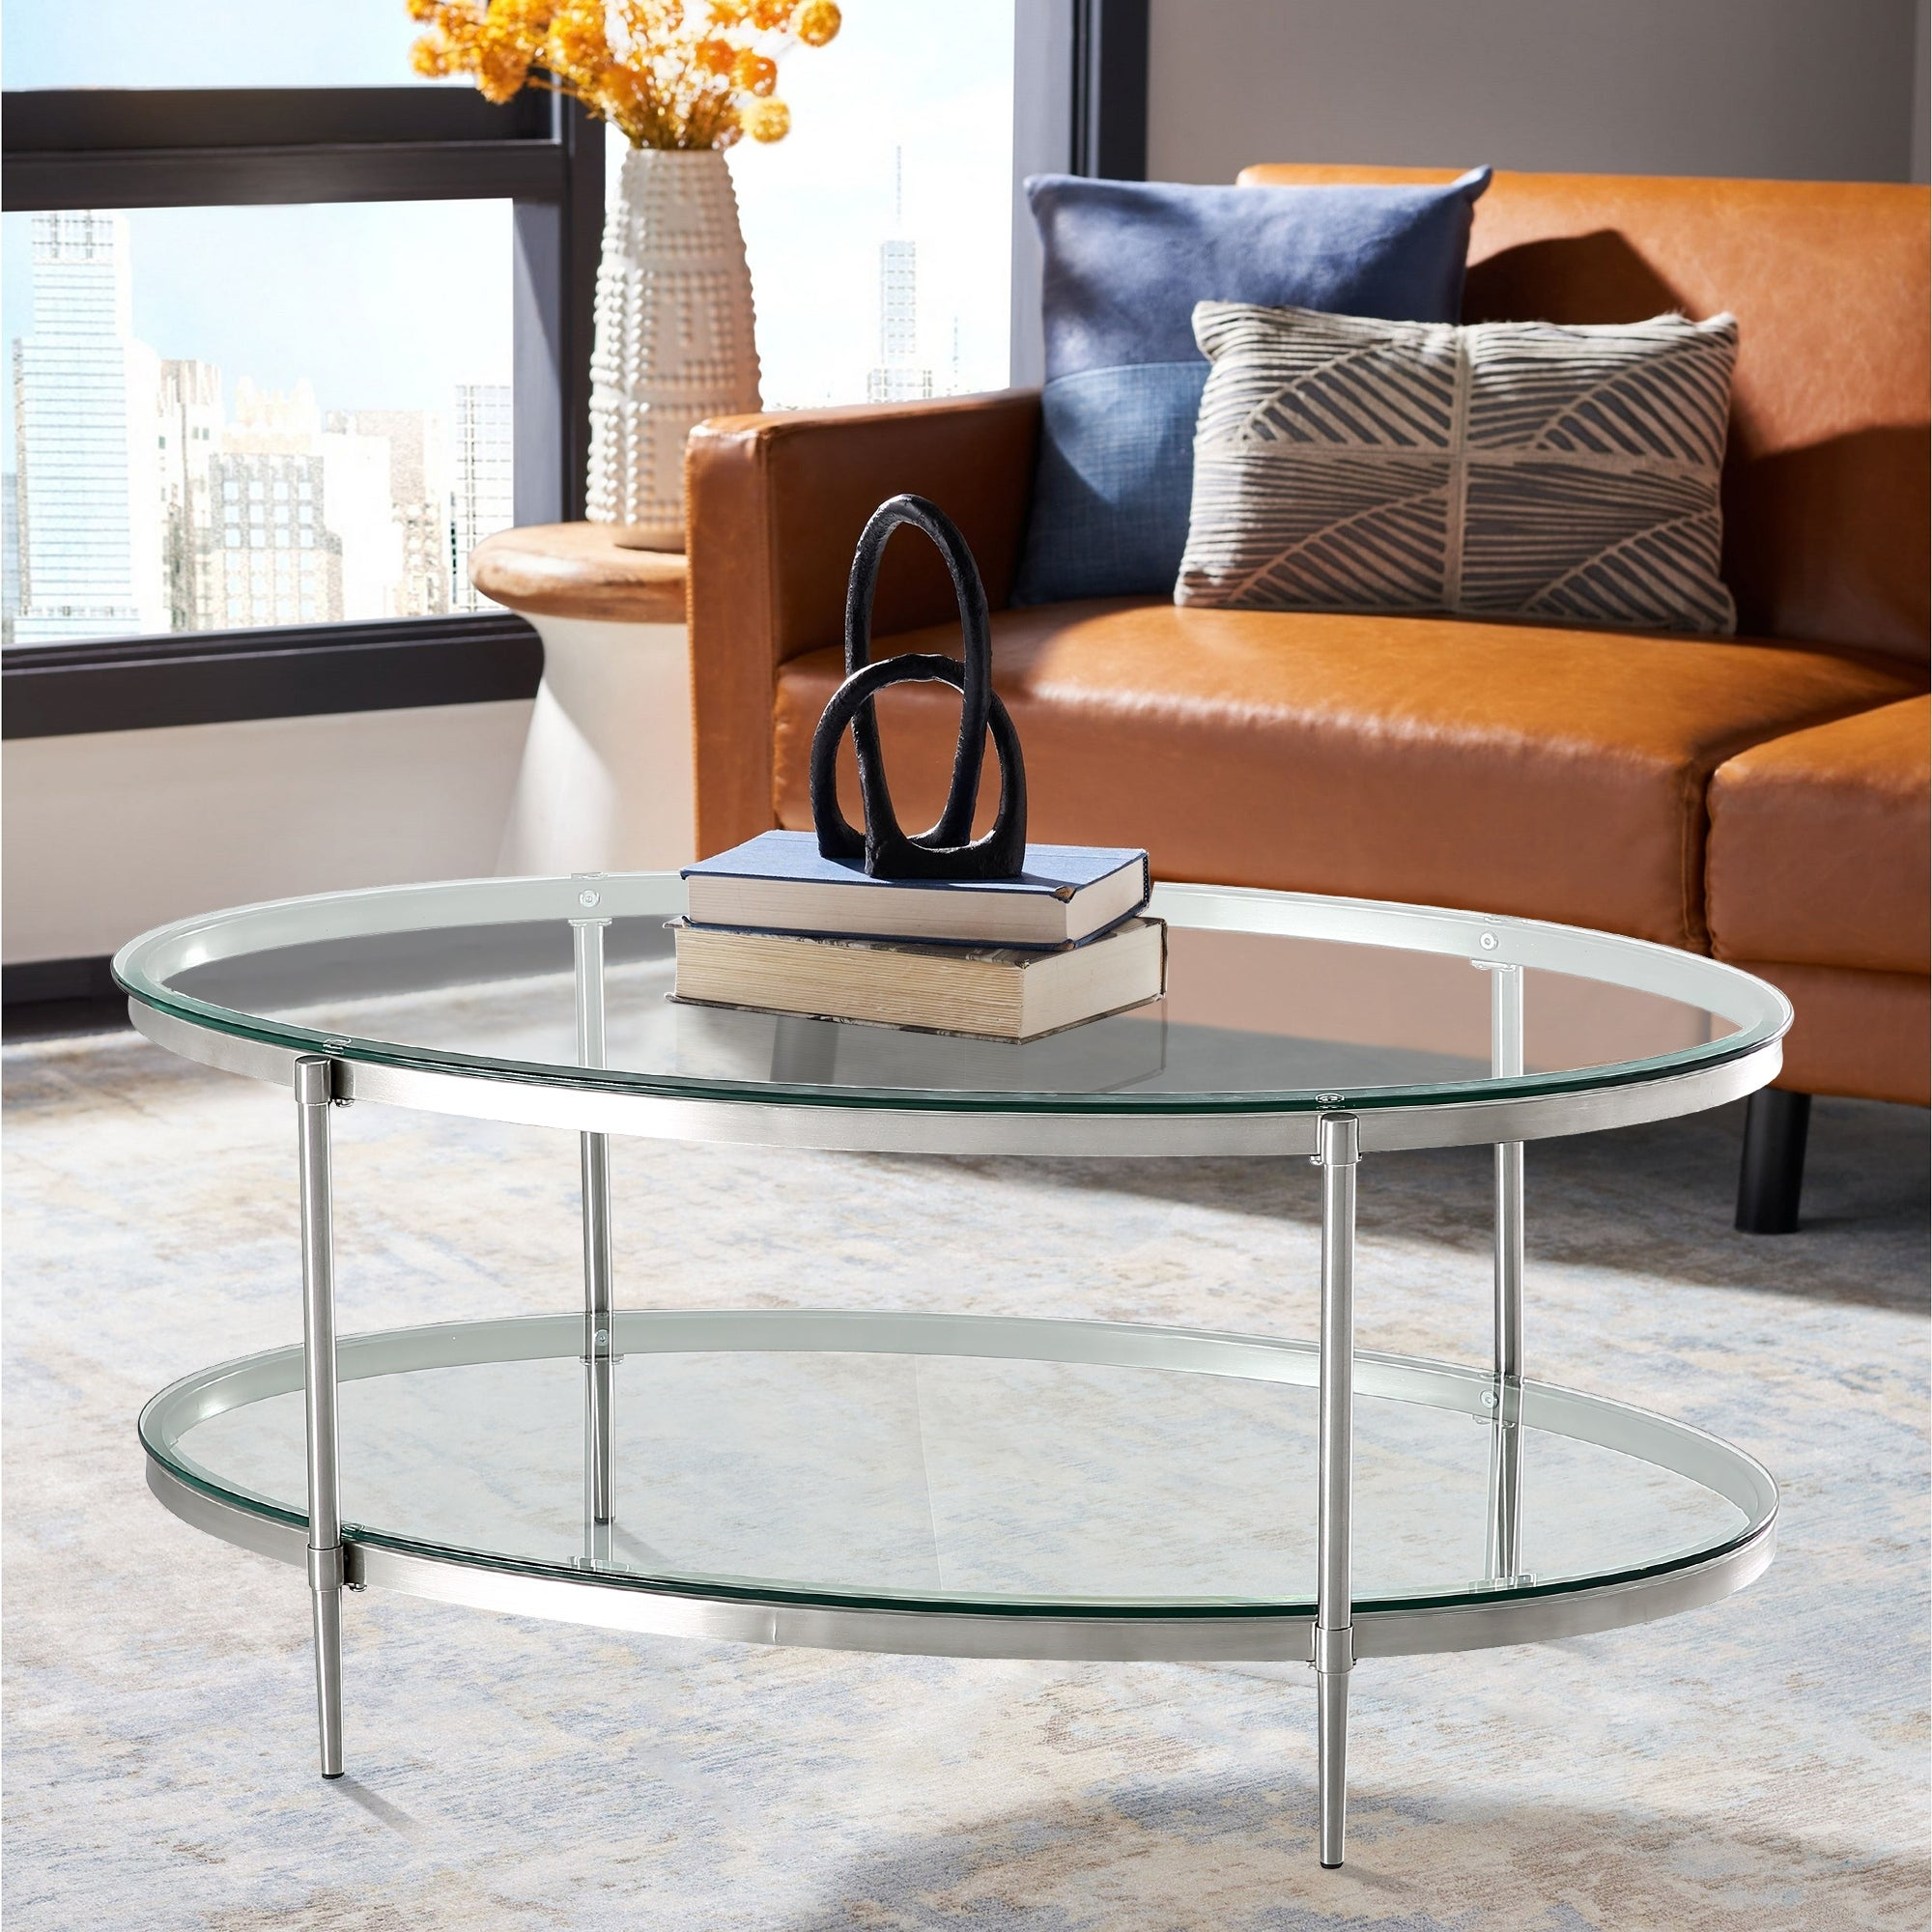 Home 2 Tier Modern Oval Glass Coffee Table Overstock 31938821